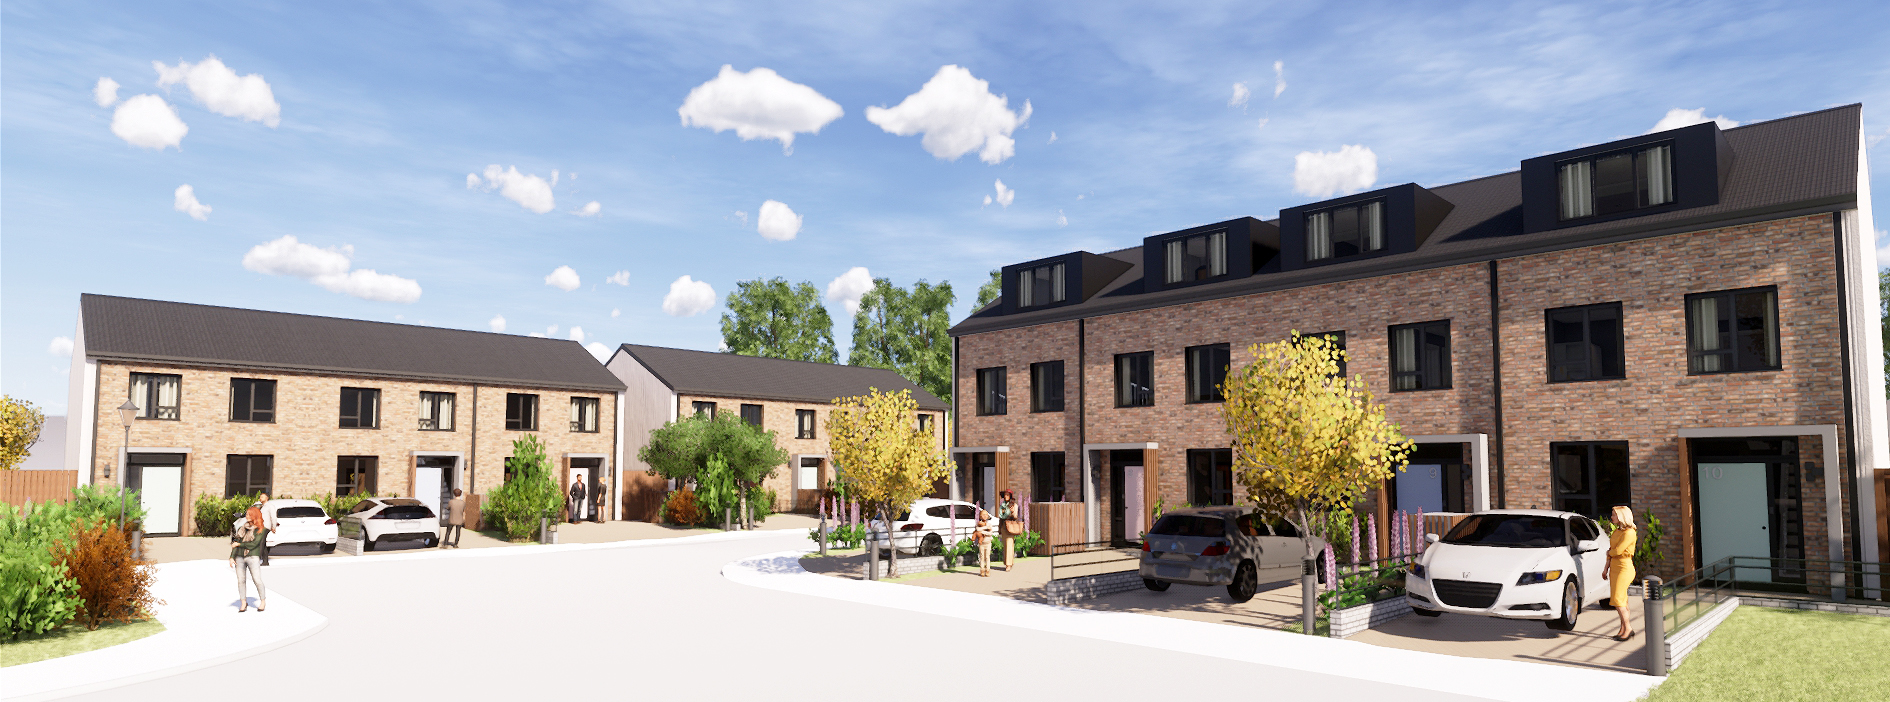 Modular Housebuilding Used in the Rehabilitation of First Time Offenders